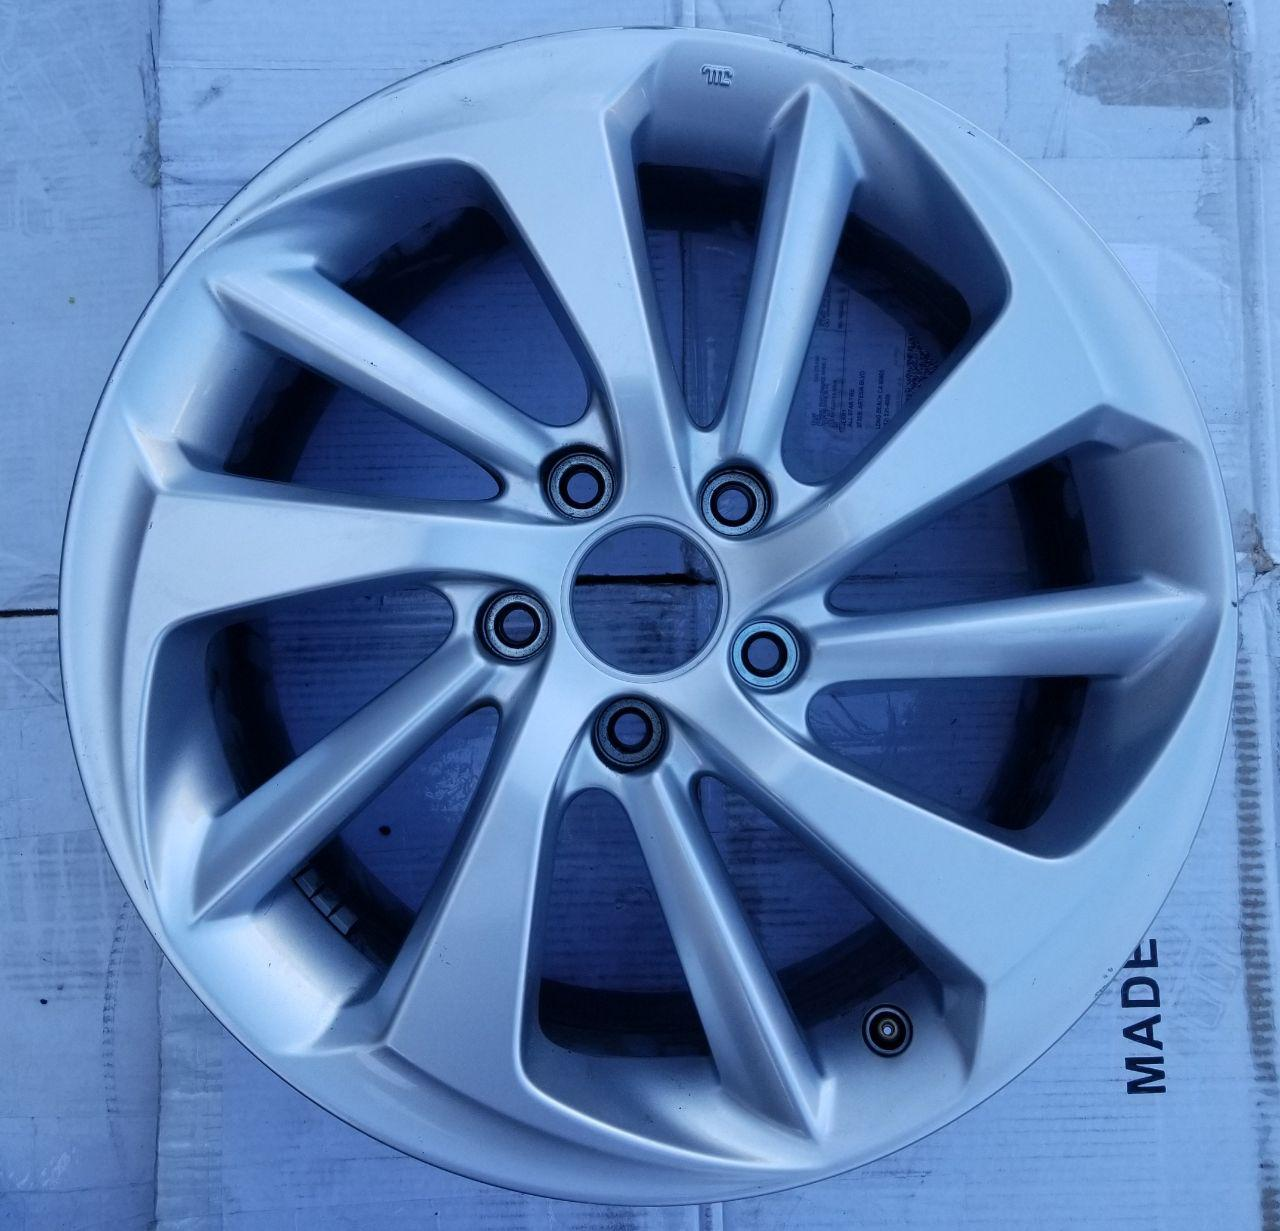 - OEM WHEELS - 2016 HONDA CR-V 17x7 5 SPOKE Hollander #64069 /  USED